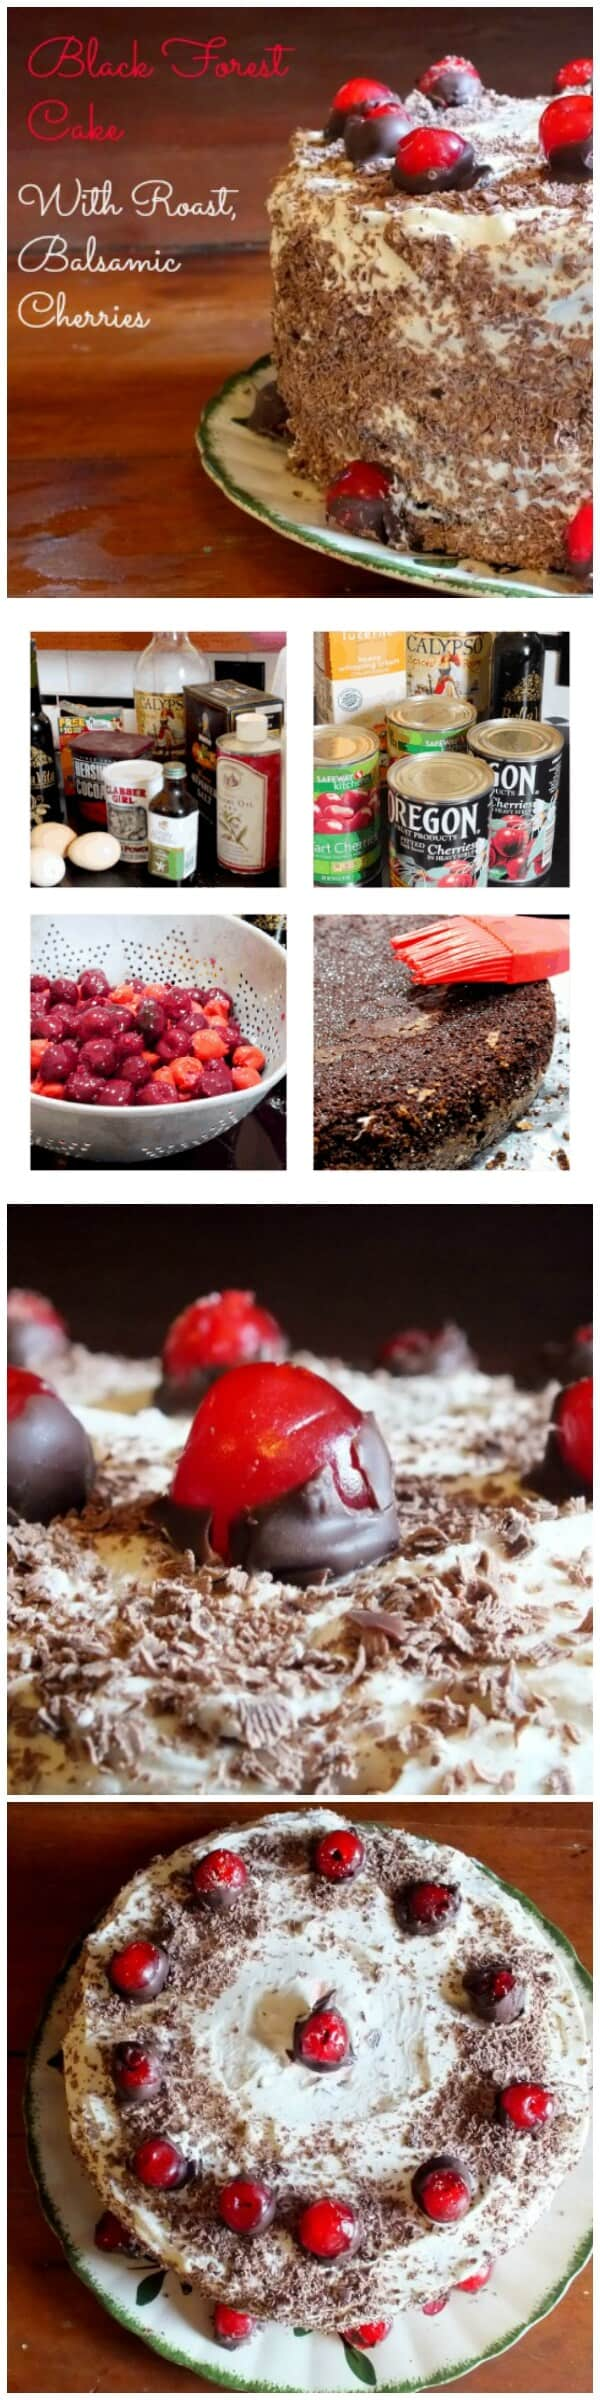 Black forest cake with rum roasted cherries is just about as good as it gets. It's dark chocolate with that tang of cherry mellowed with rum and covered in a cloud of whipped cream frosting. So good! Restlesschipotle.com